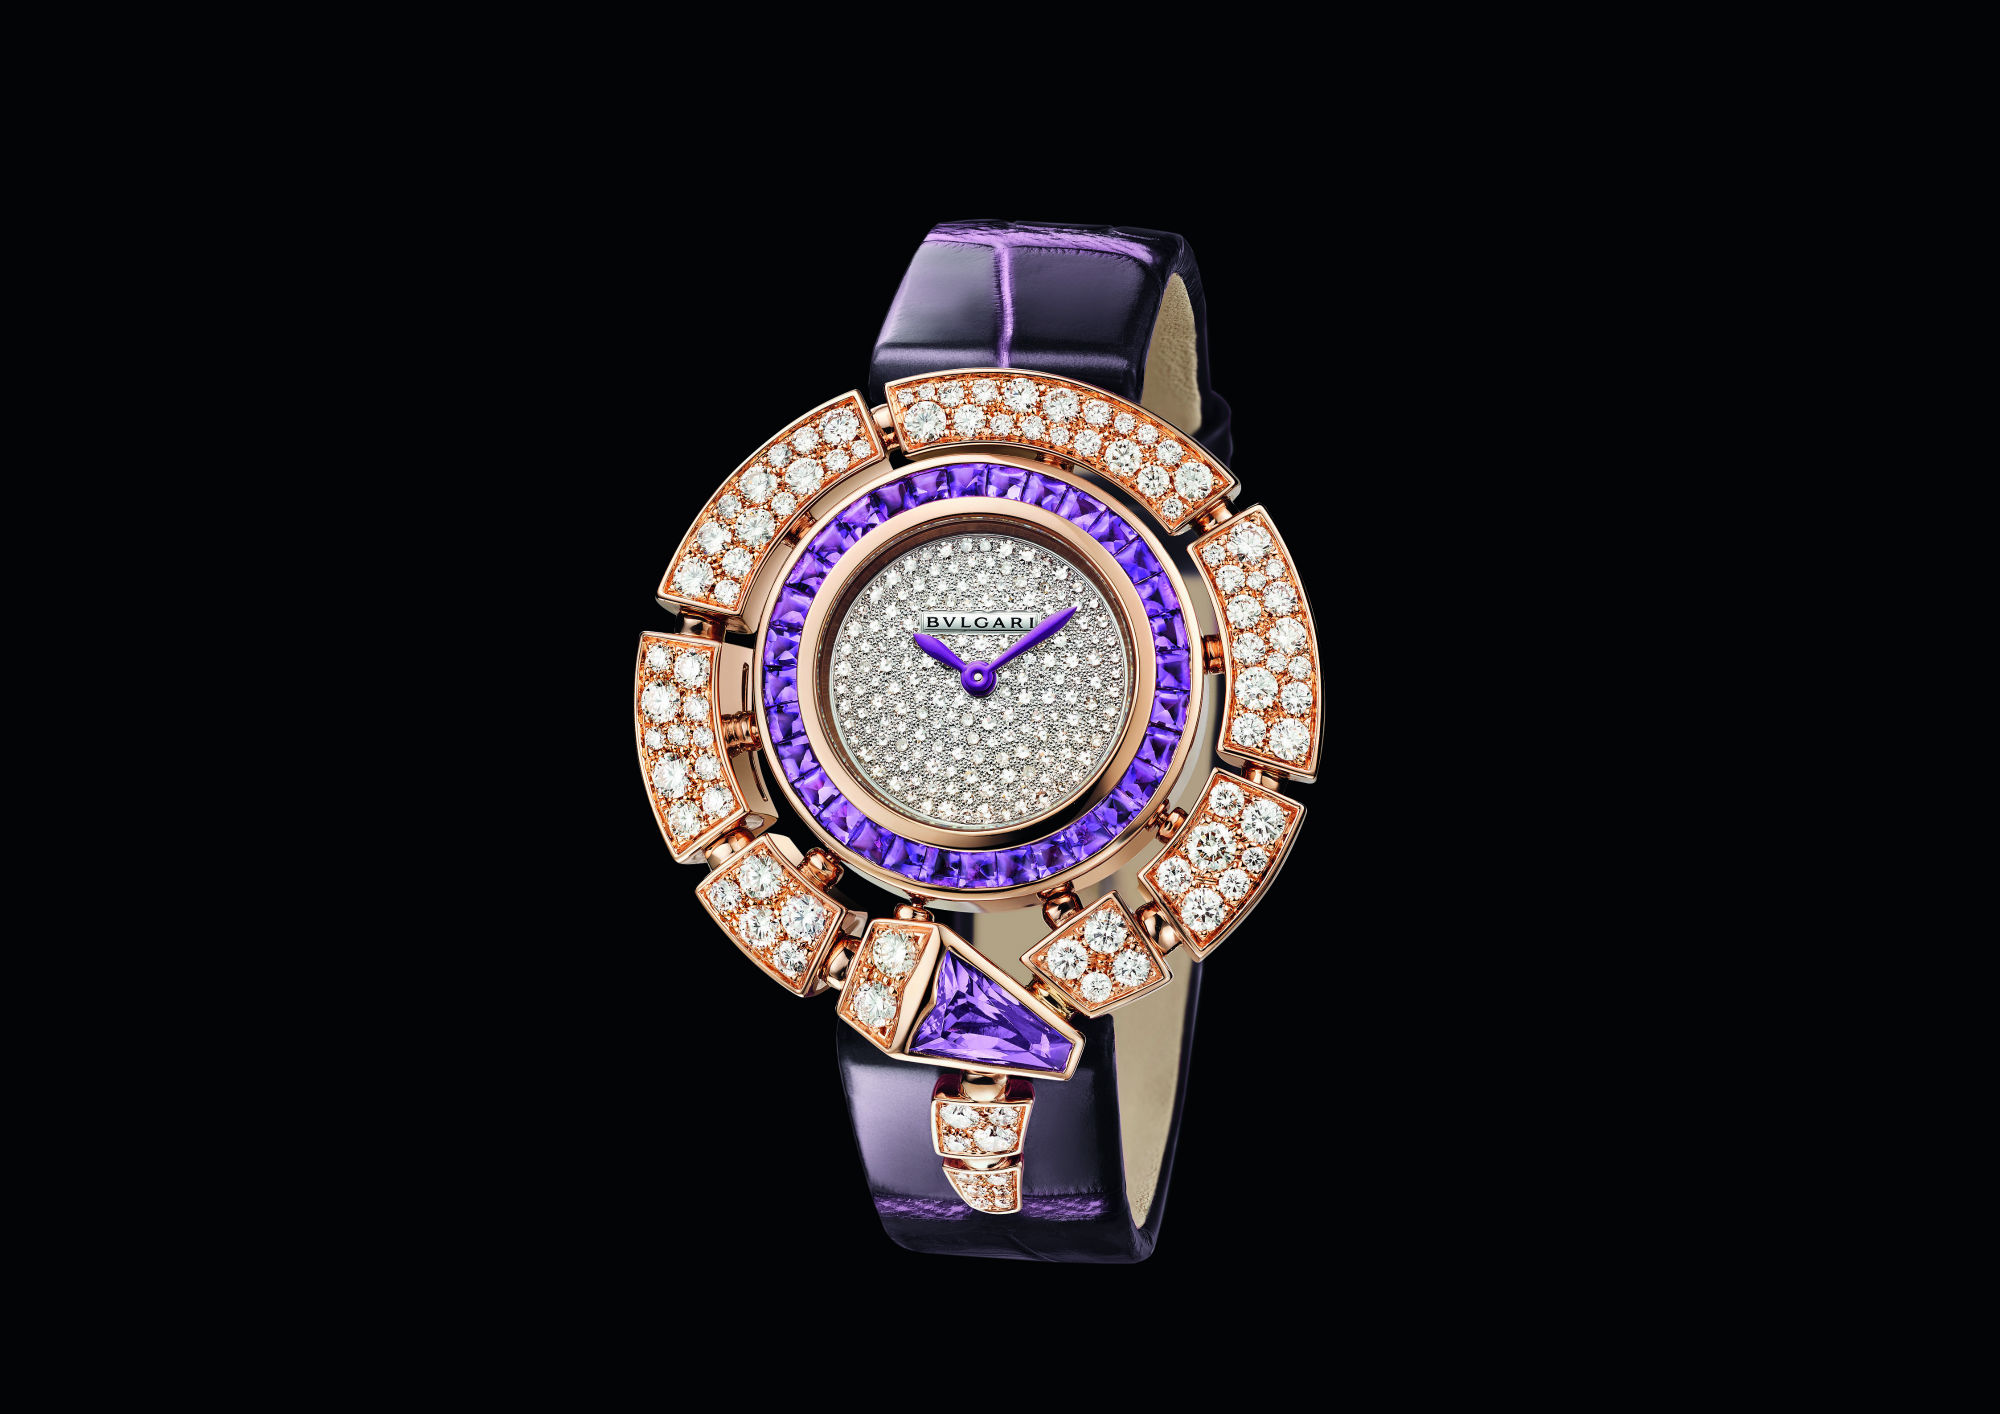 The newest take on the Bvlgari Serpenti watch uses amethyst gemstones known to calm the mind and body